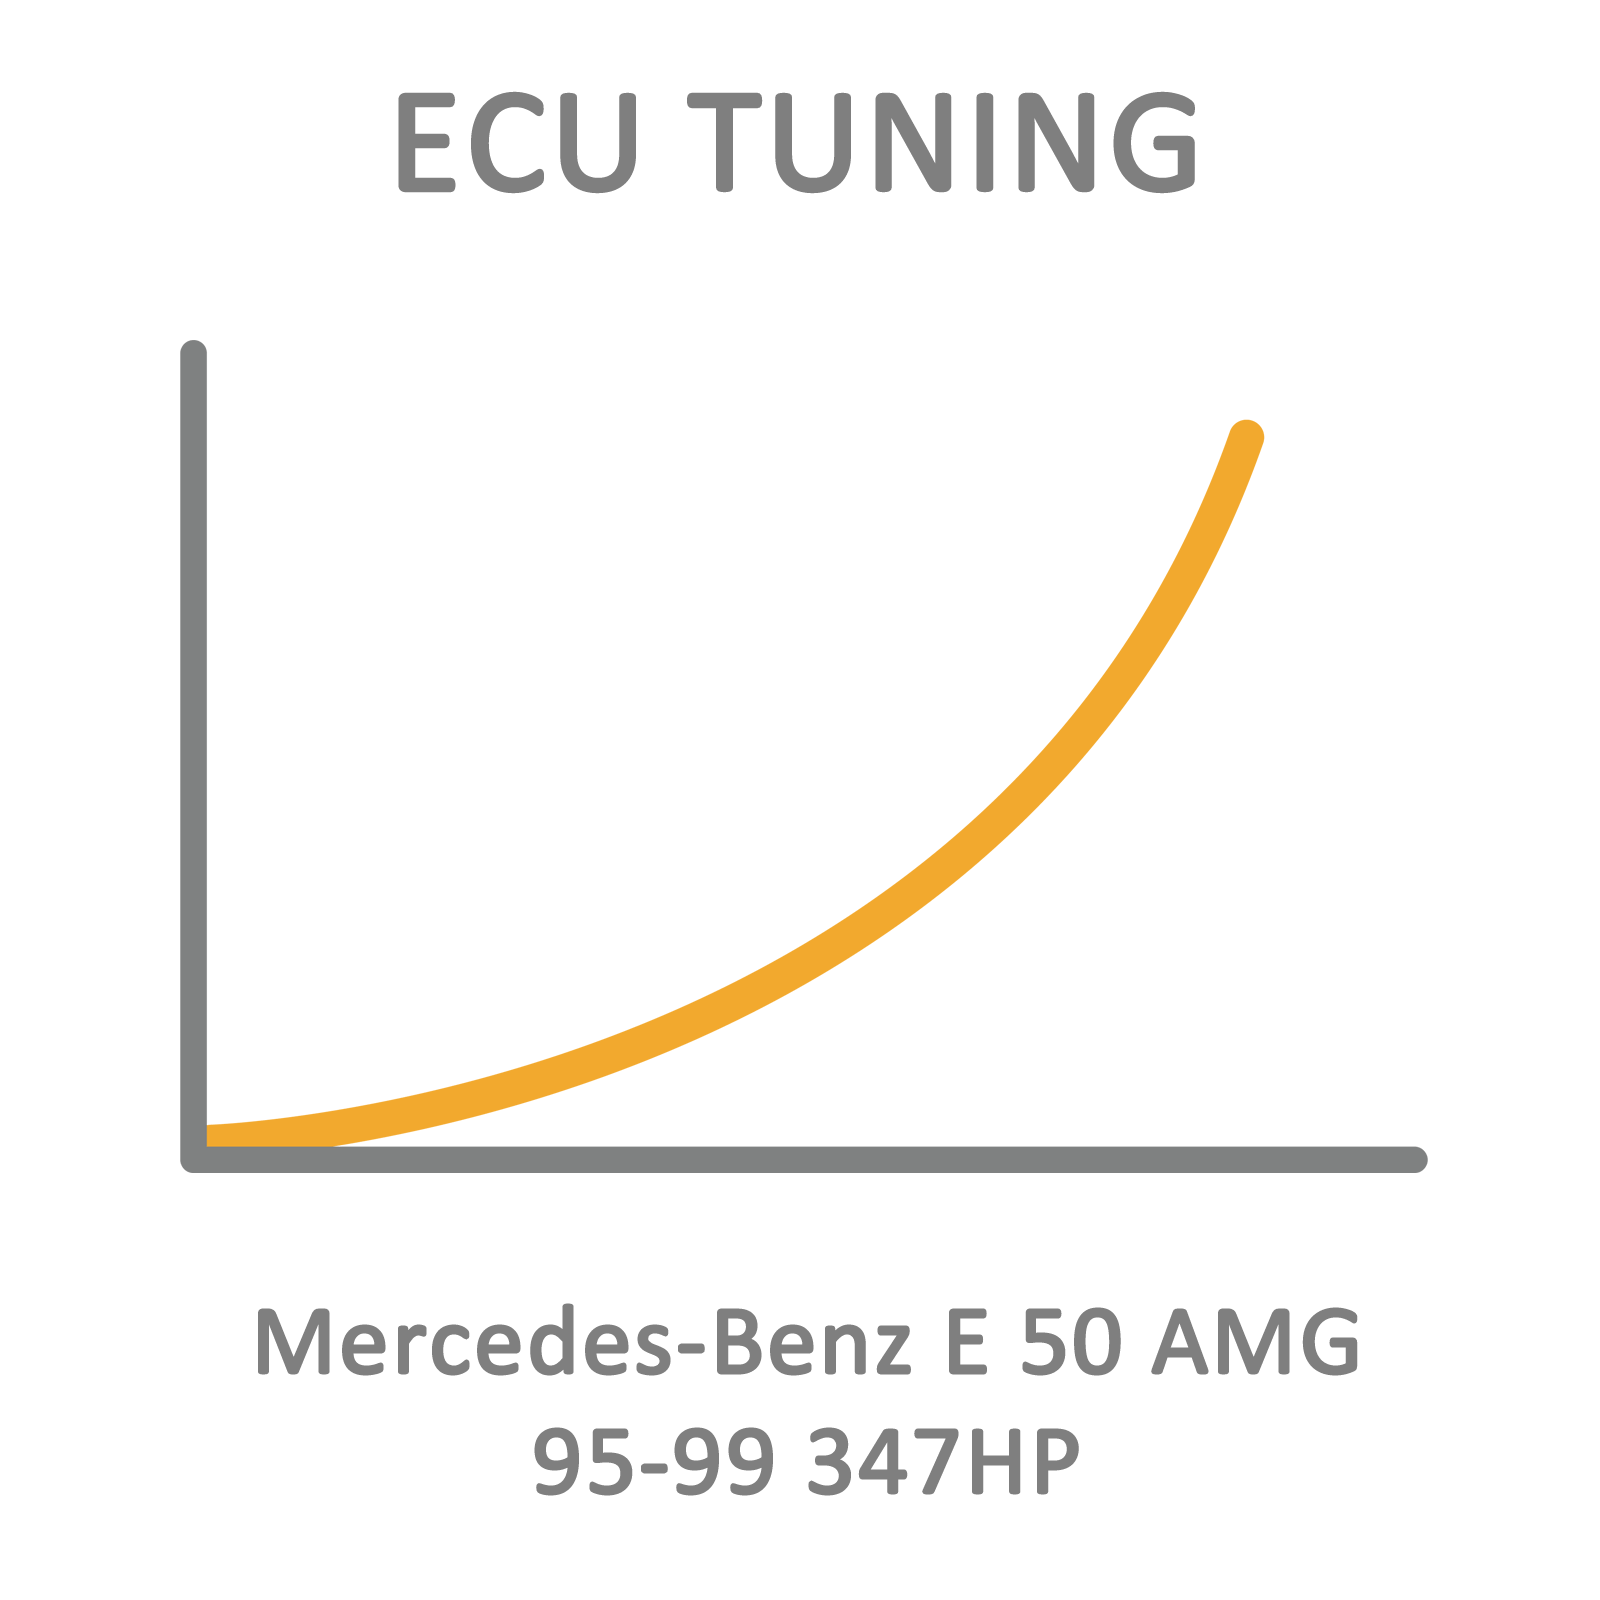 Mercedes-Benz E 50 AMG 95-99 347HP ECU Tuning Remapping